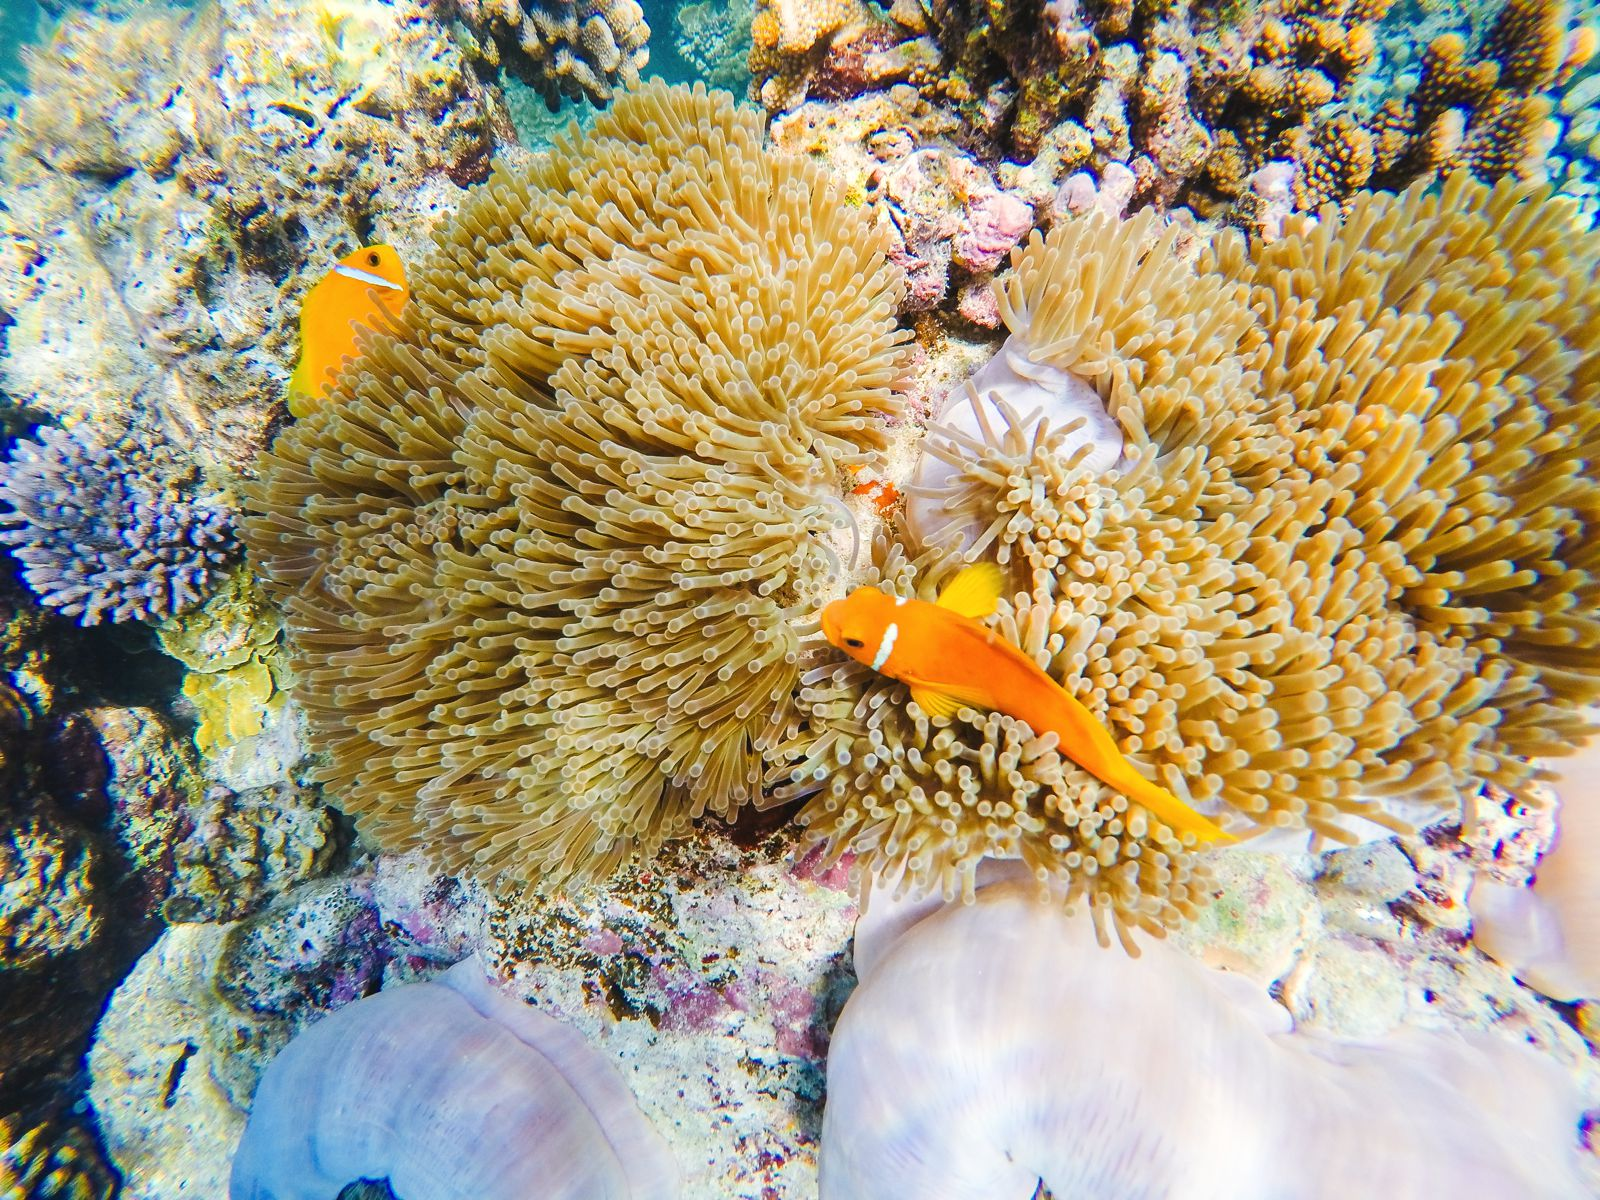 Swimming With Sharks, Turtles, Clownfish And Stingrays In The Maldives (21)